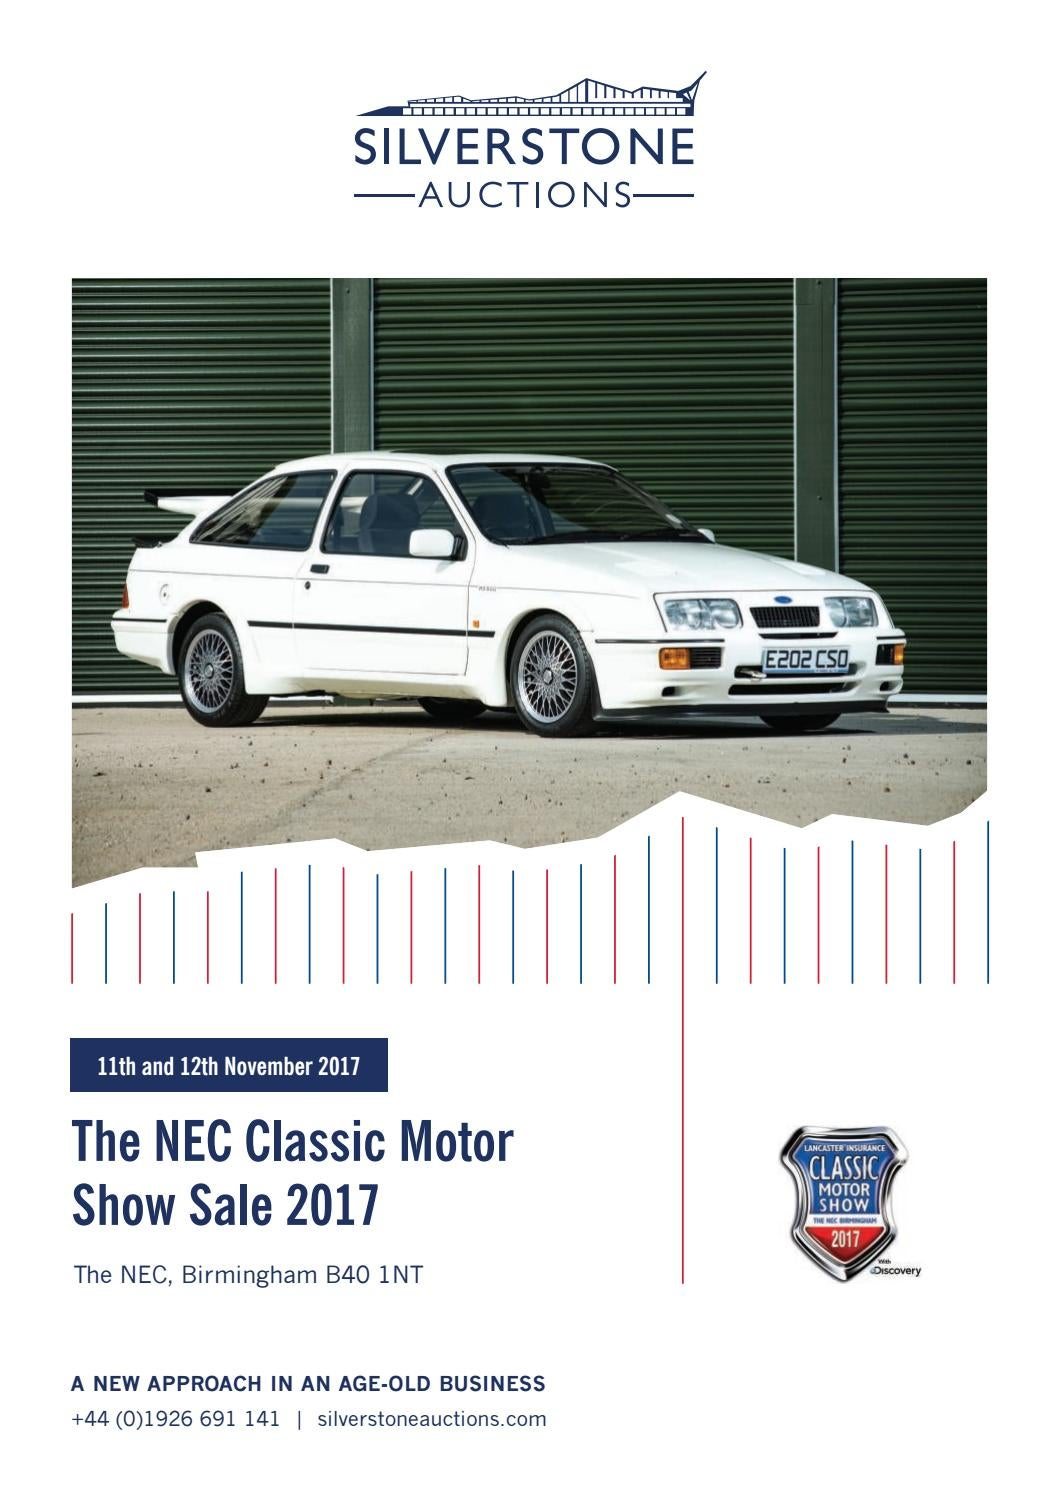 hight resolution of silverstone auctions the nec classic motor show sale 2017 11 12 november by silverstone auctions issuu